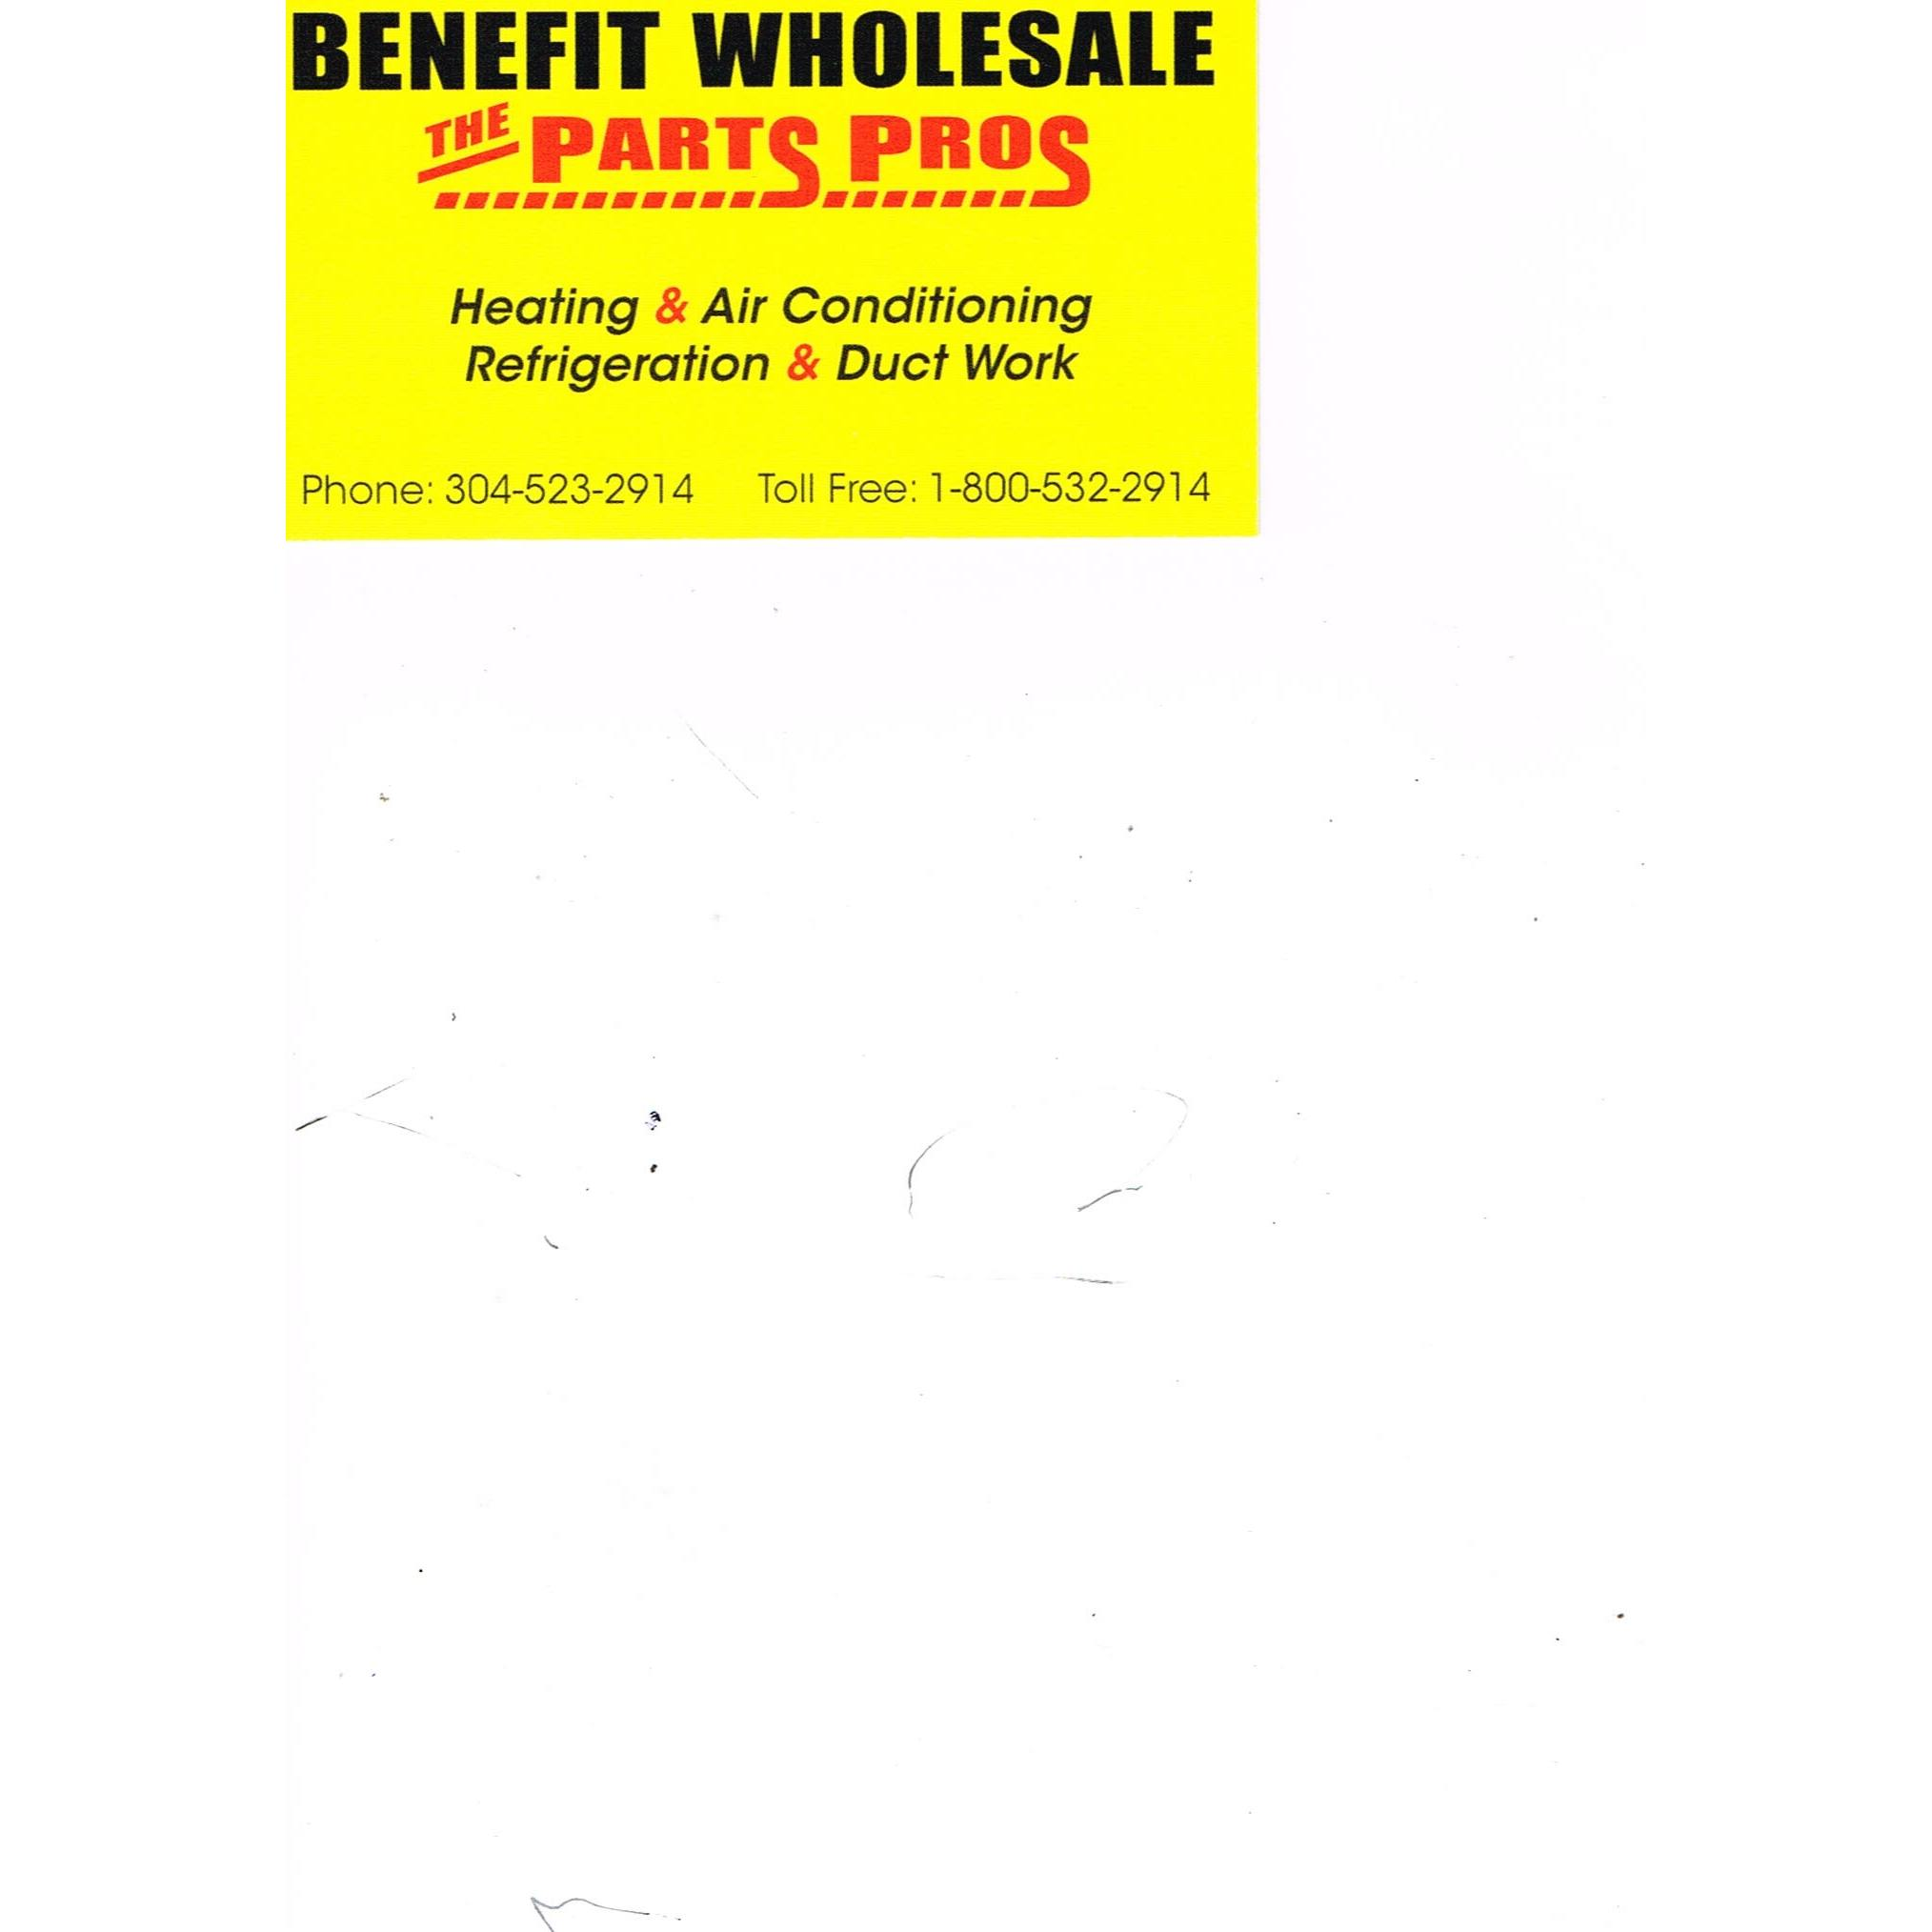 Benefit Wholesale Equipment